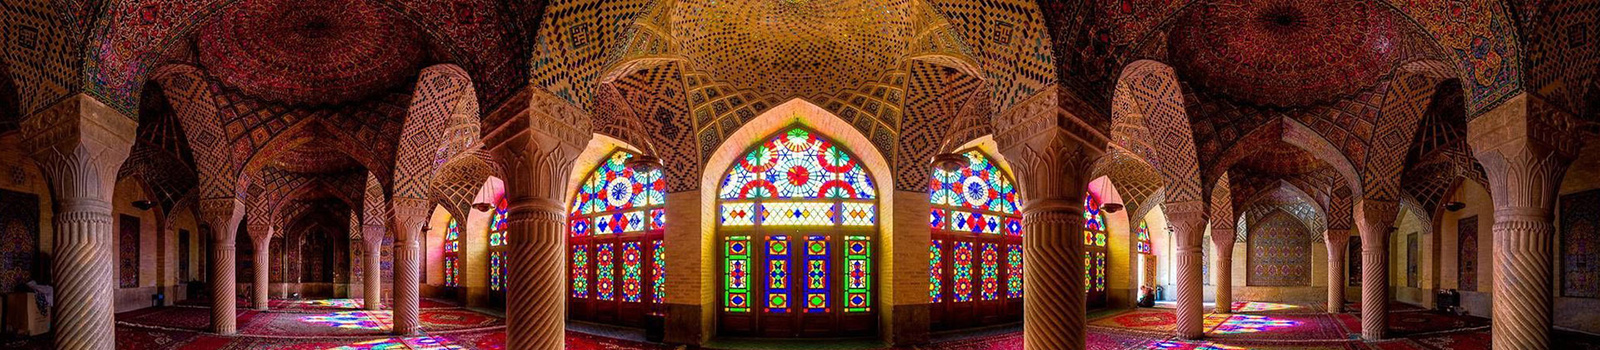 Nasir Al Mulk Mosque in Shiraz